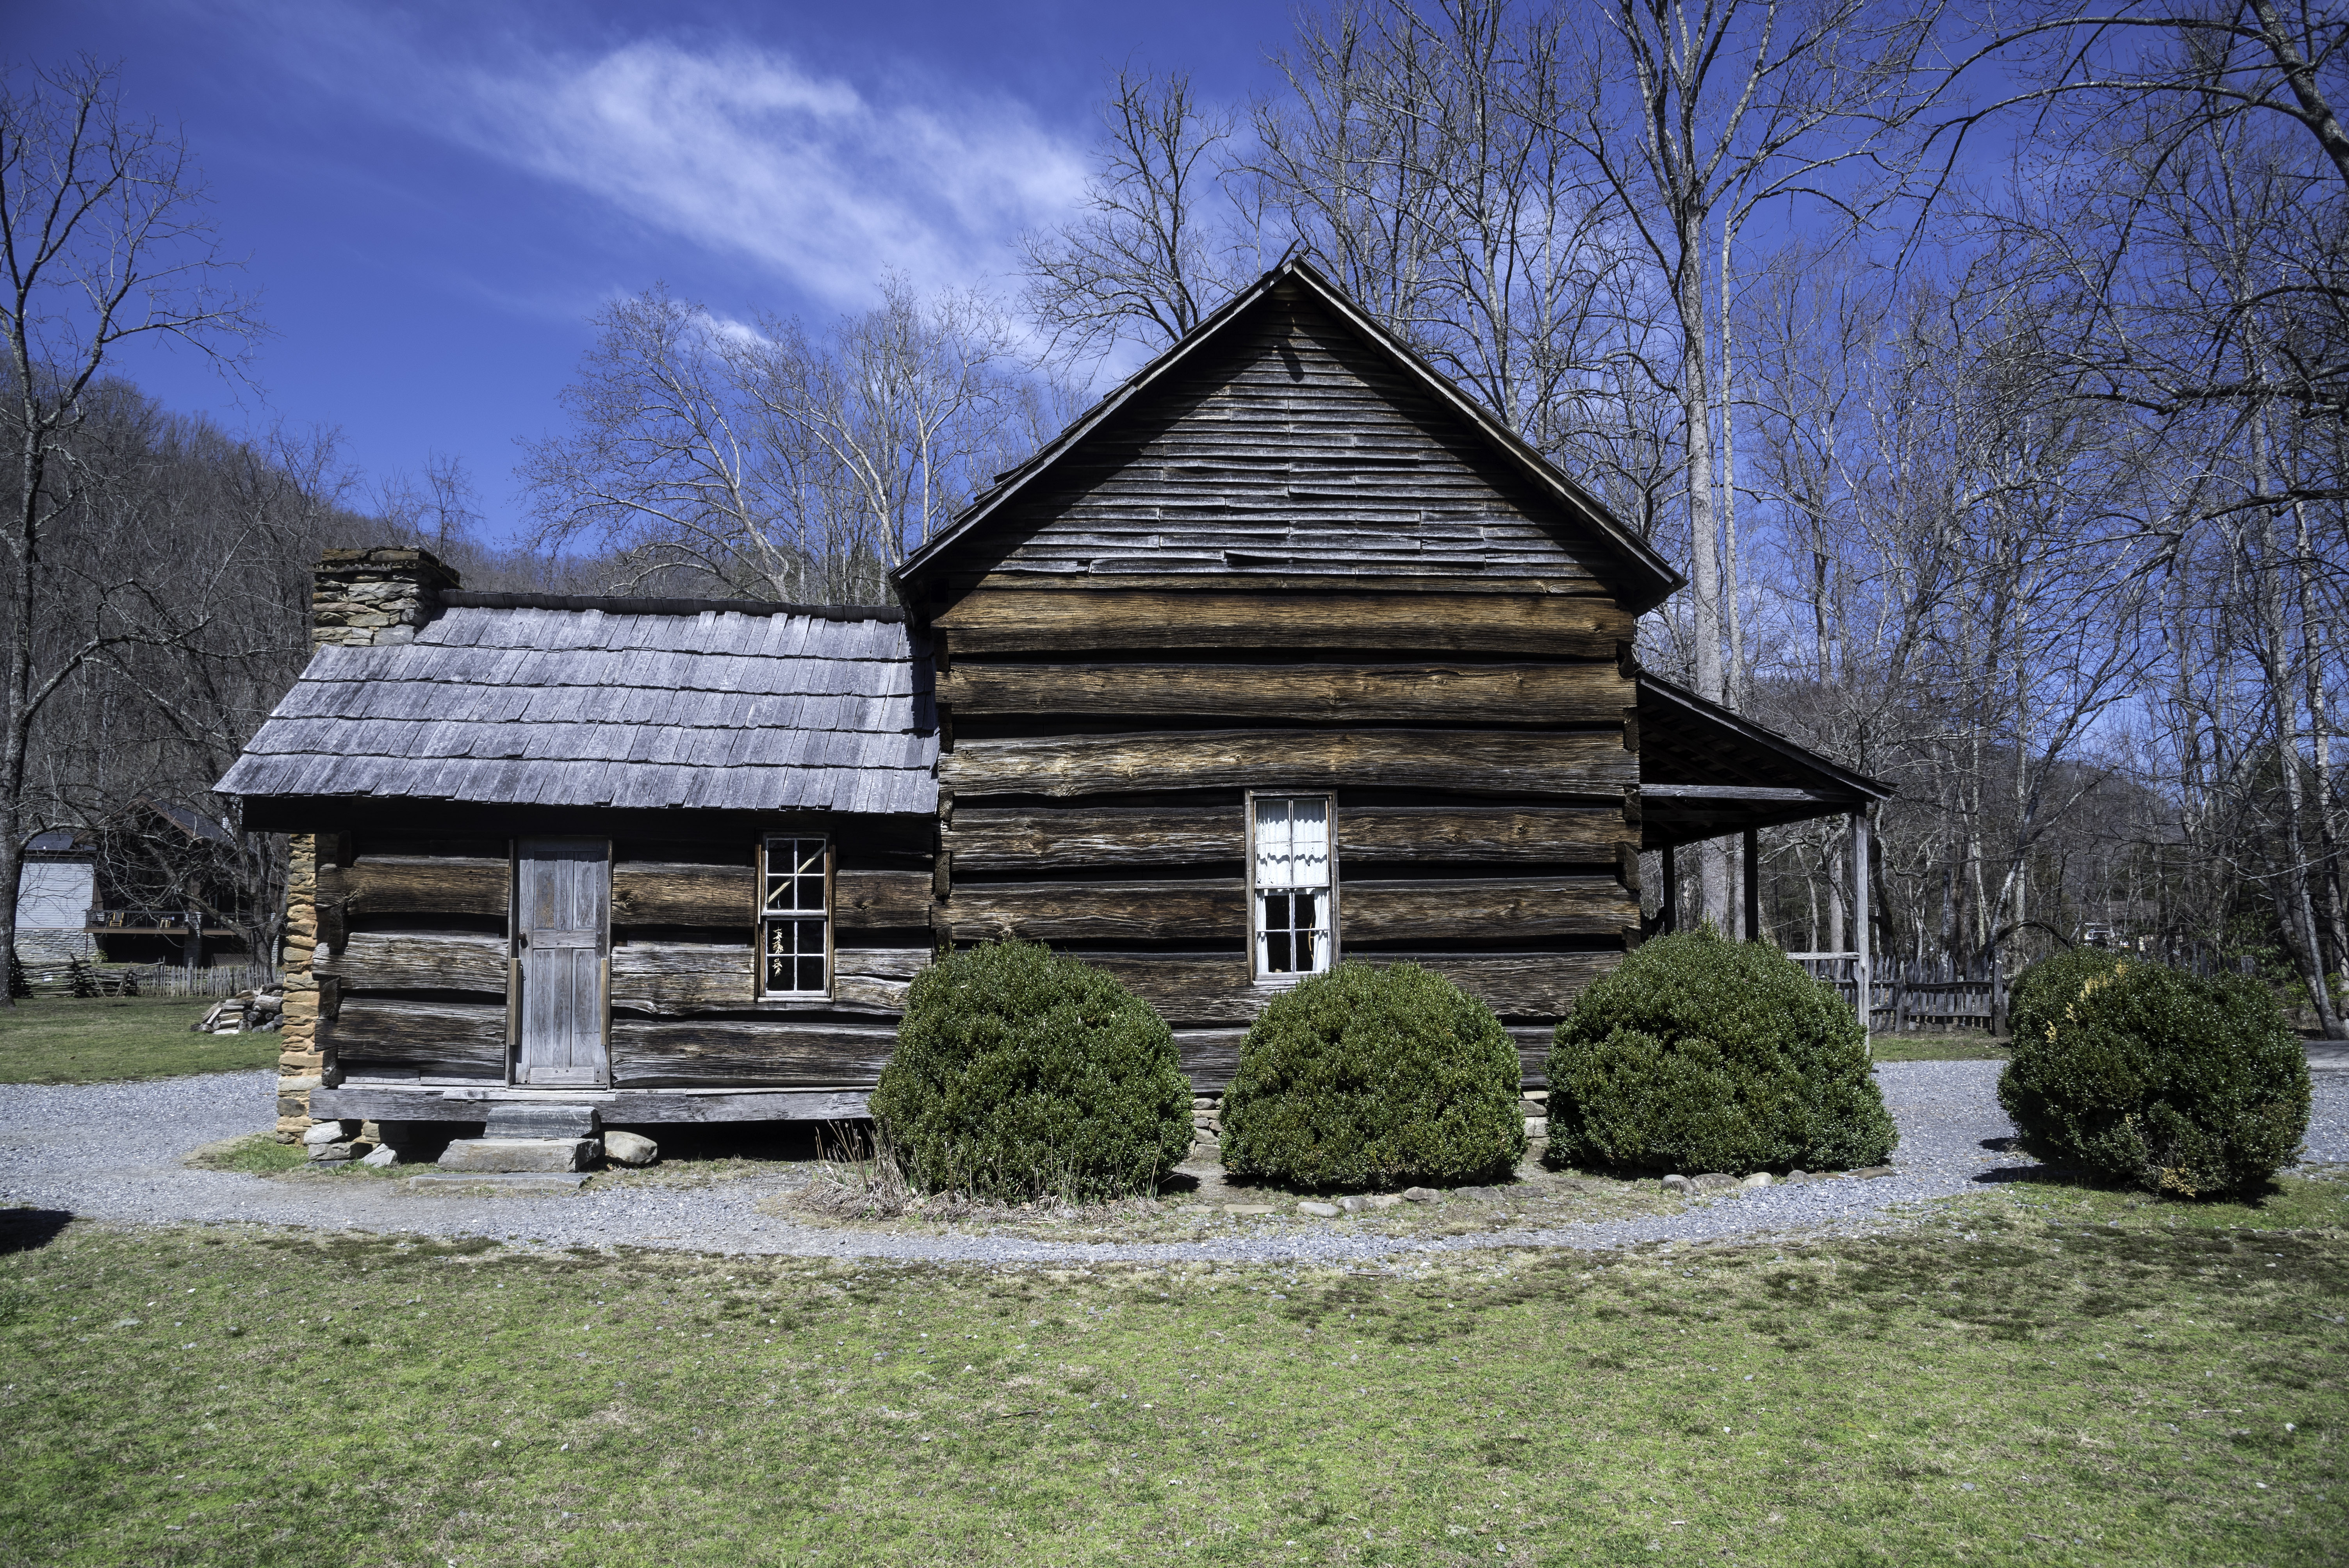 Log cabin in an old settlement in great smoky mountains for Cabin in north carolina mountains